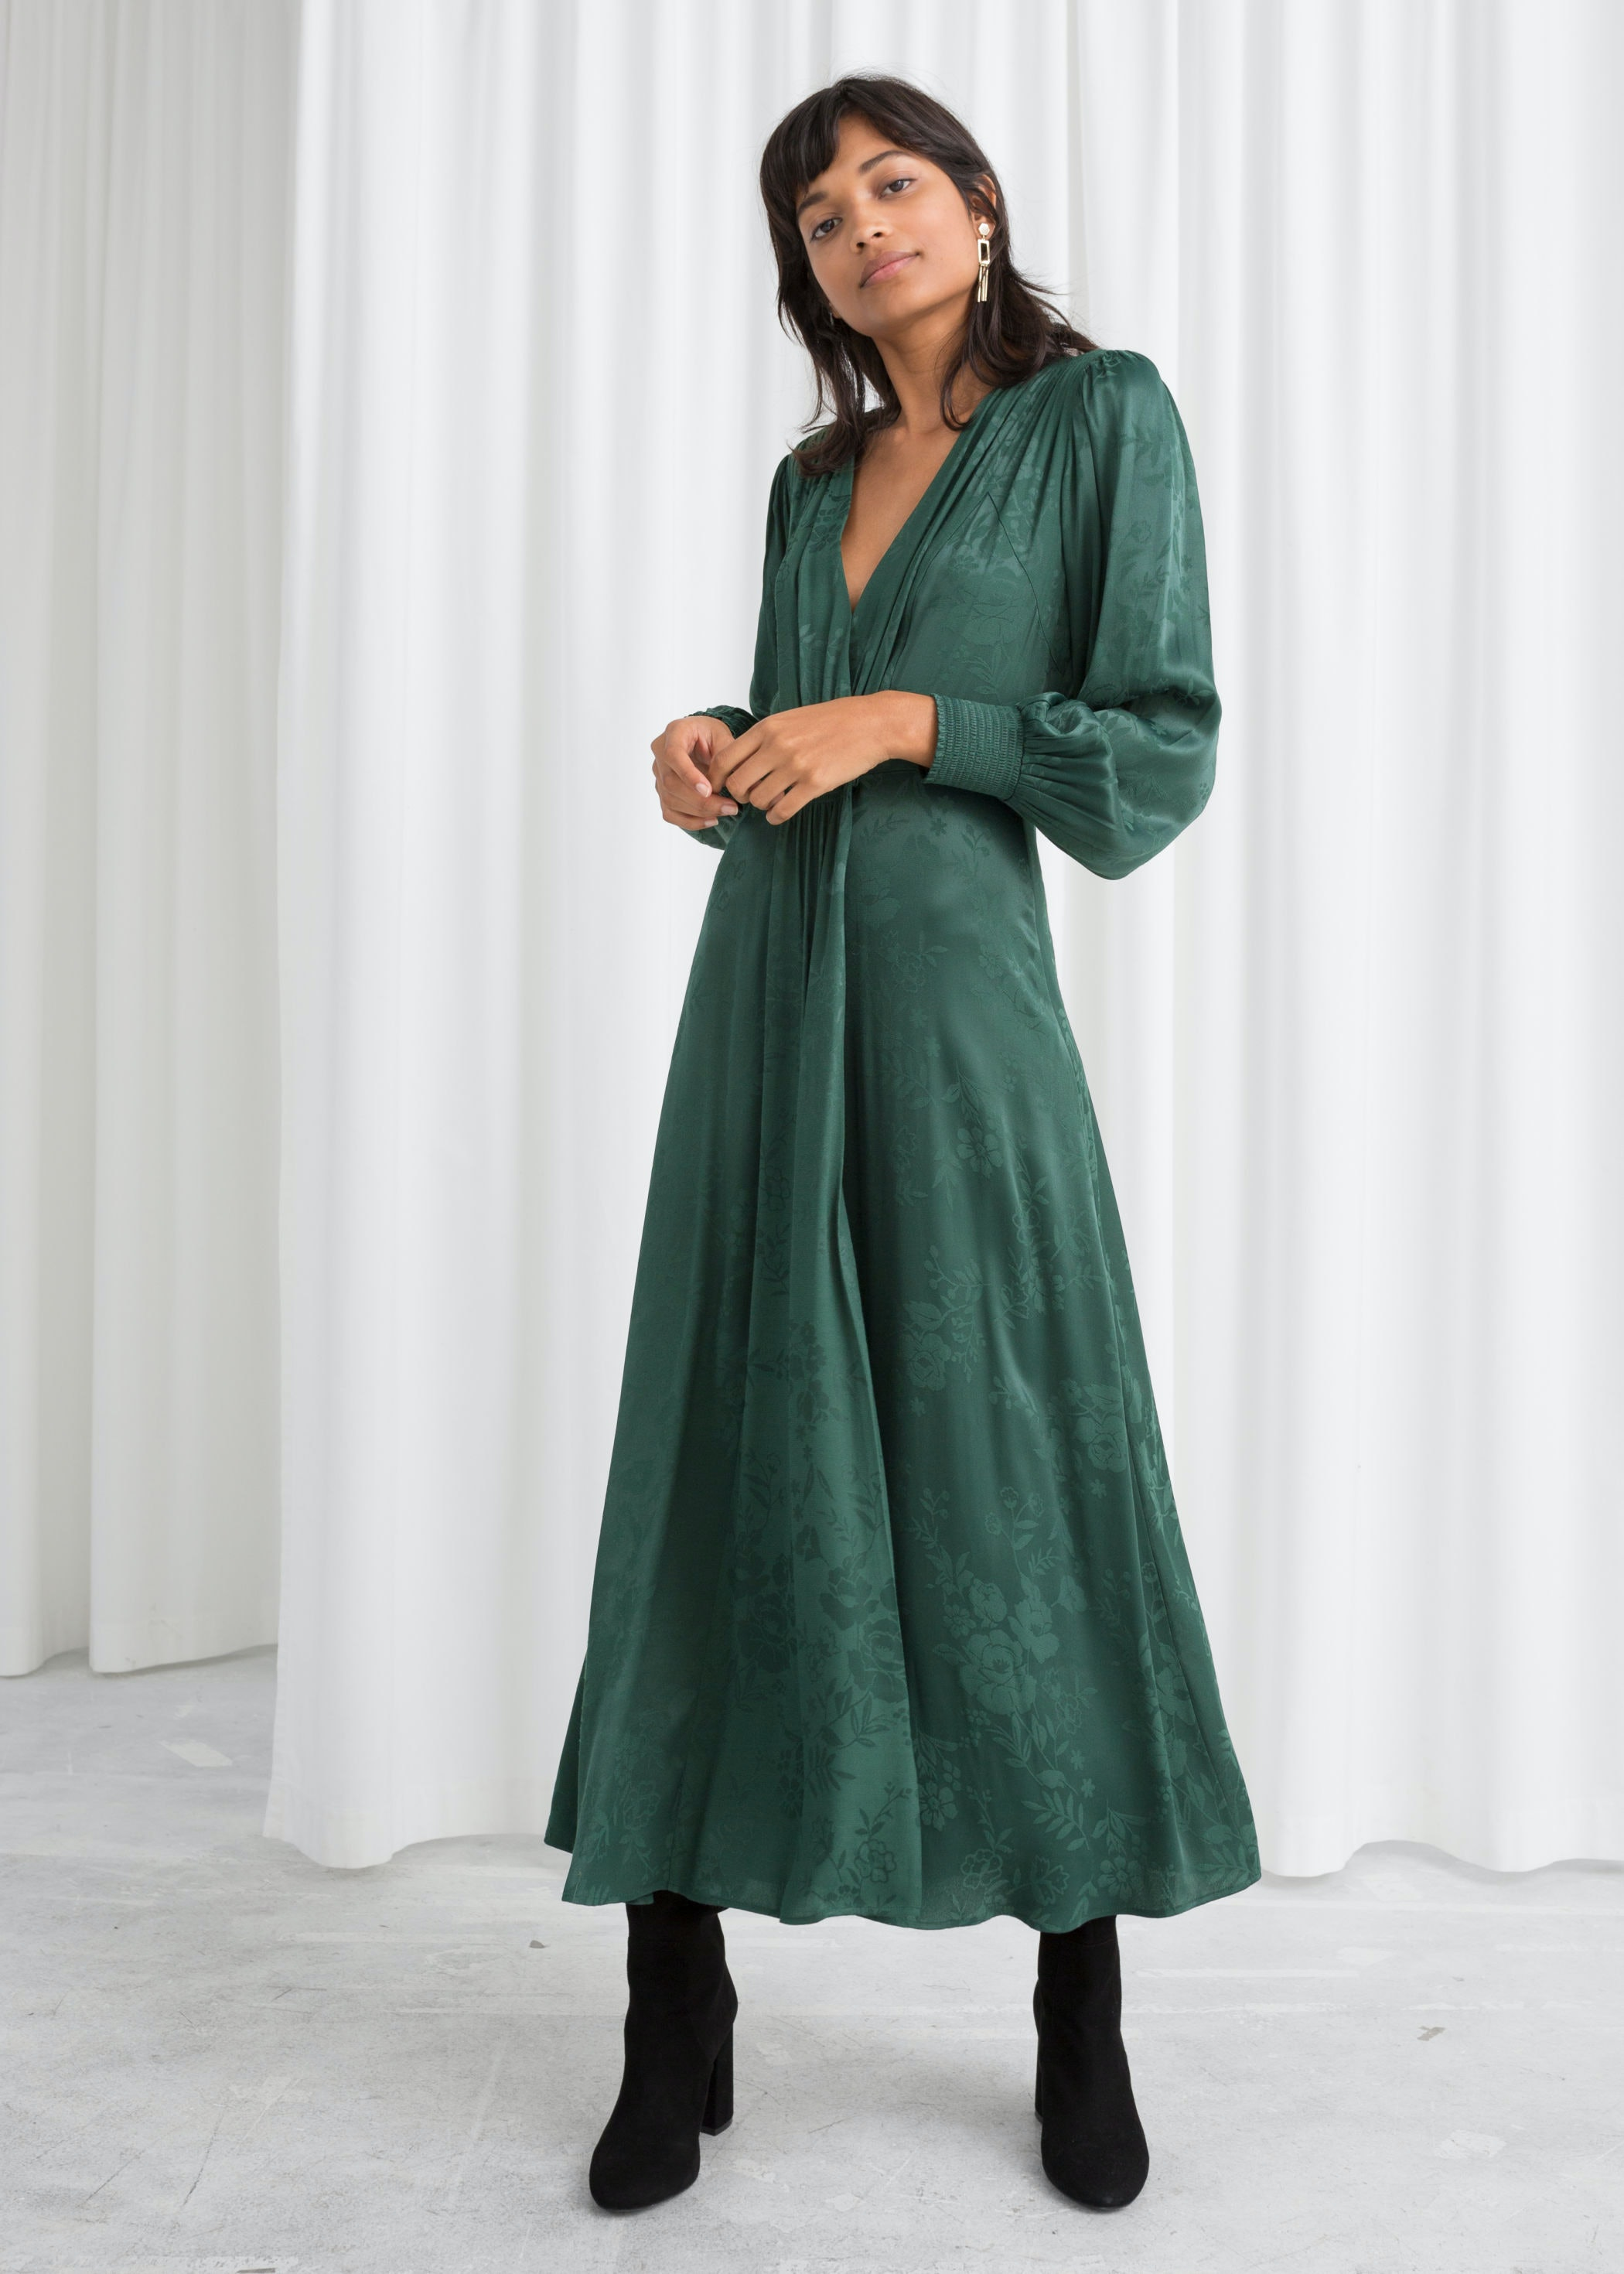 95696b9bf3 15 Fall Wedding Guest Dresses Under $150 You'll Love In & Other Stories'  New Arrivals